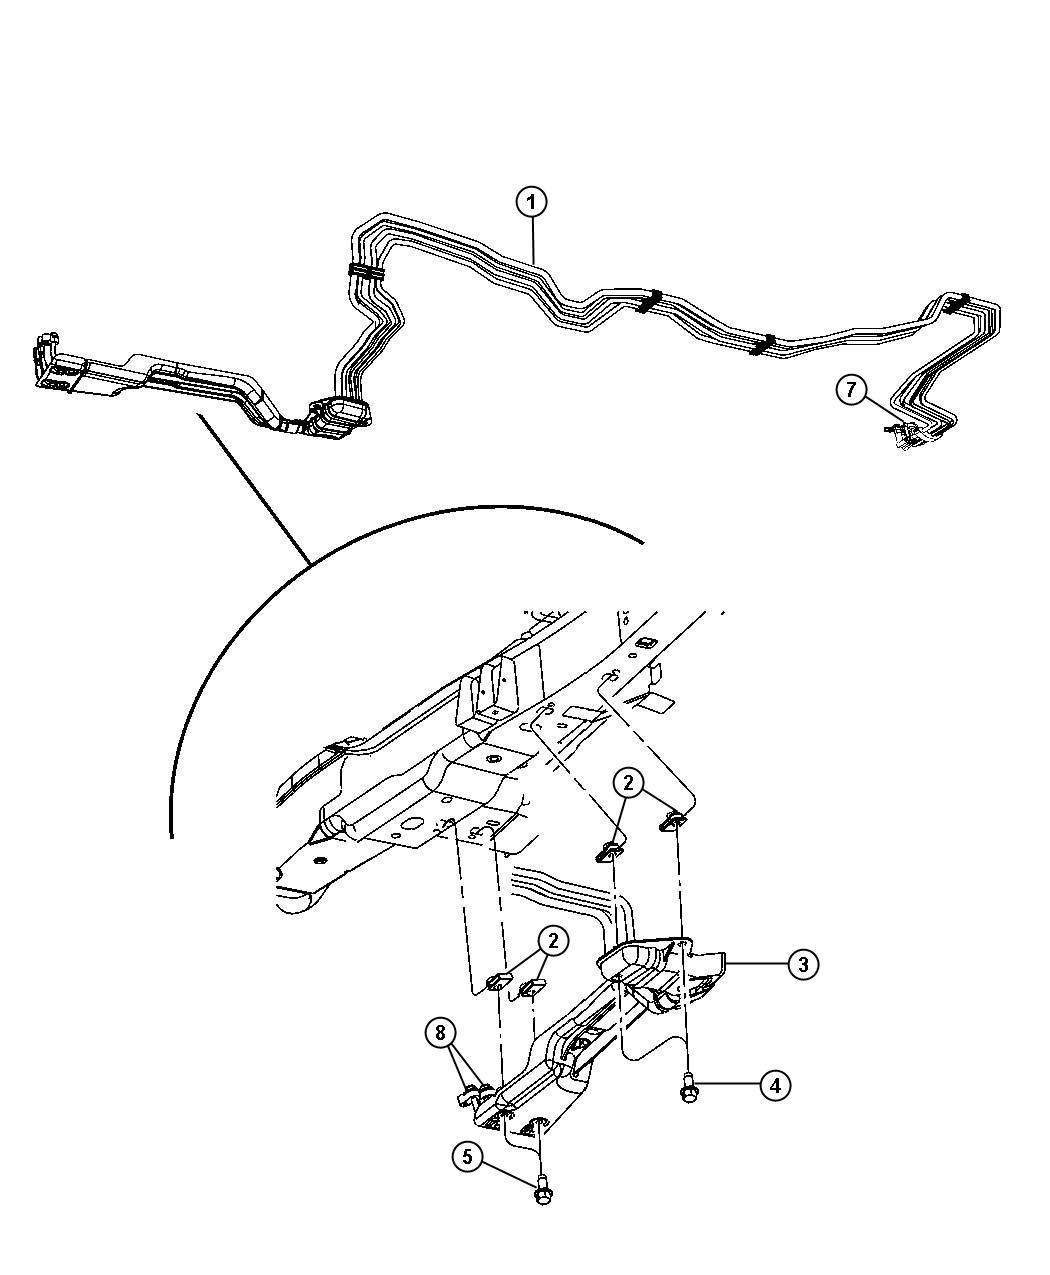 Jeep Commander Line Used For A C And Heater Underbody